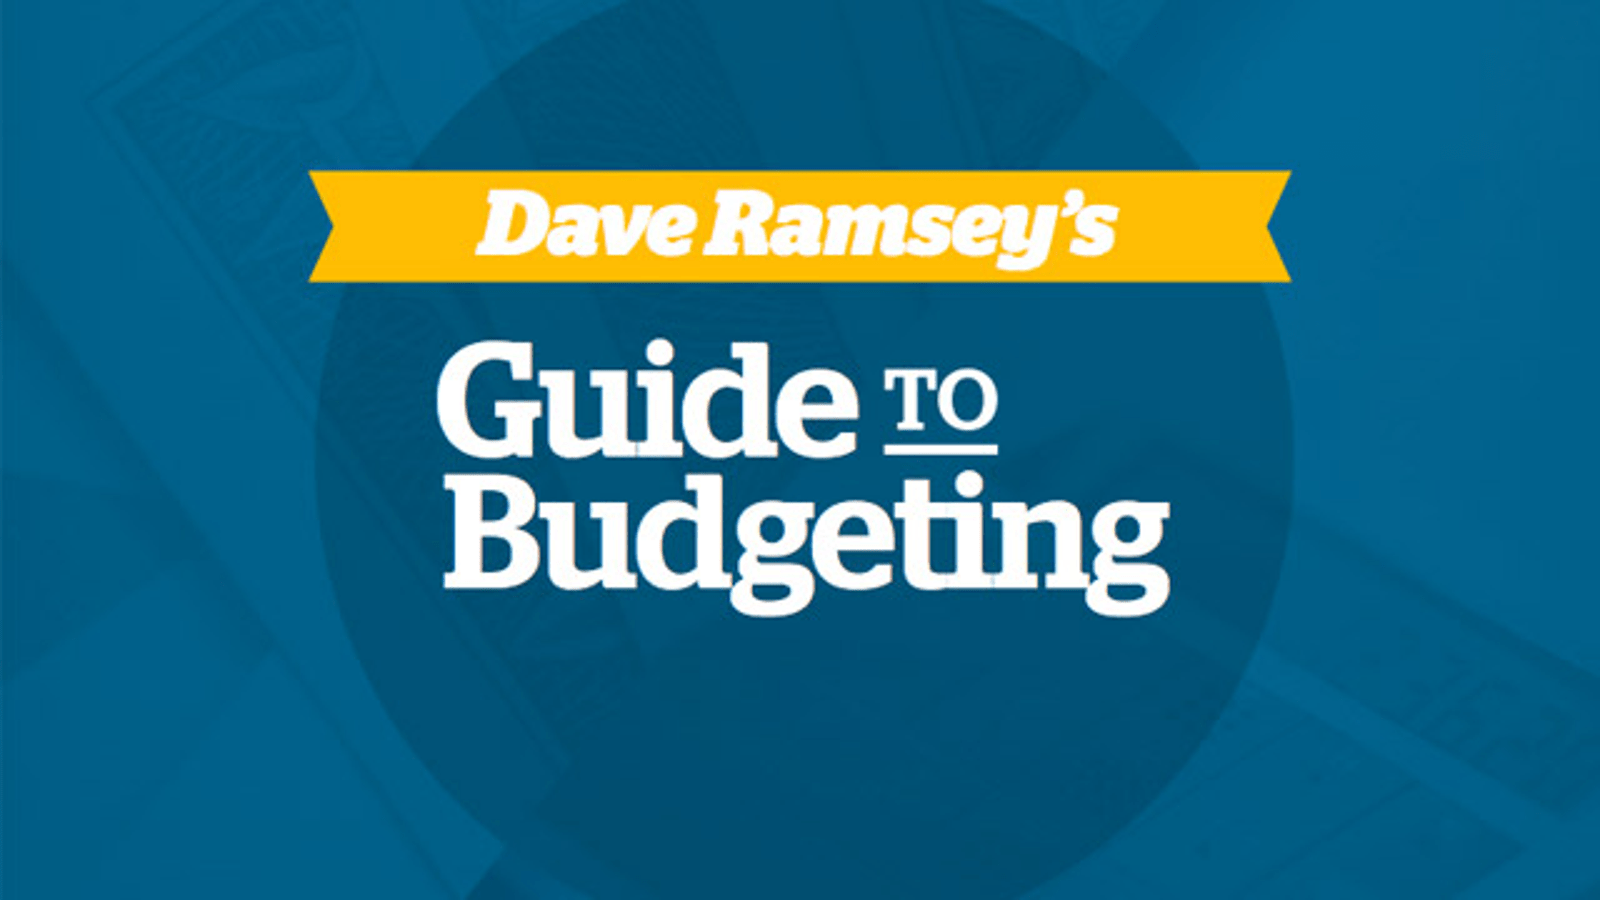 Dave Ramsey S Free Guide To Budgeting Shows You How To